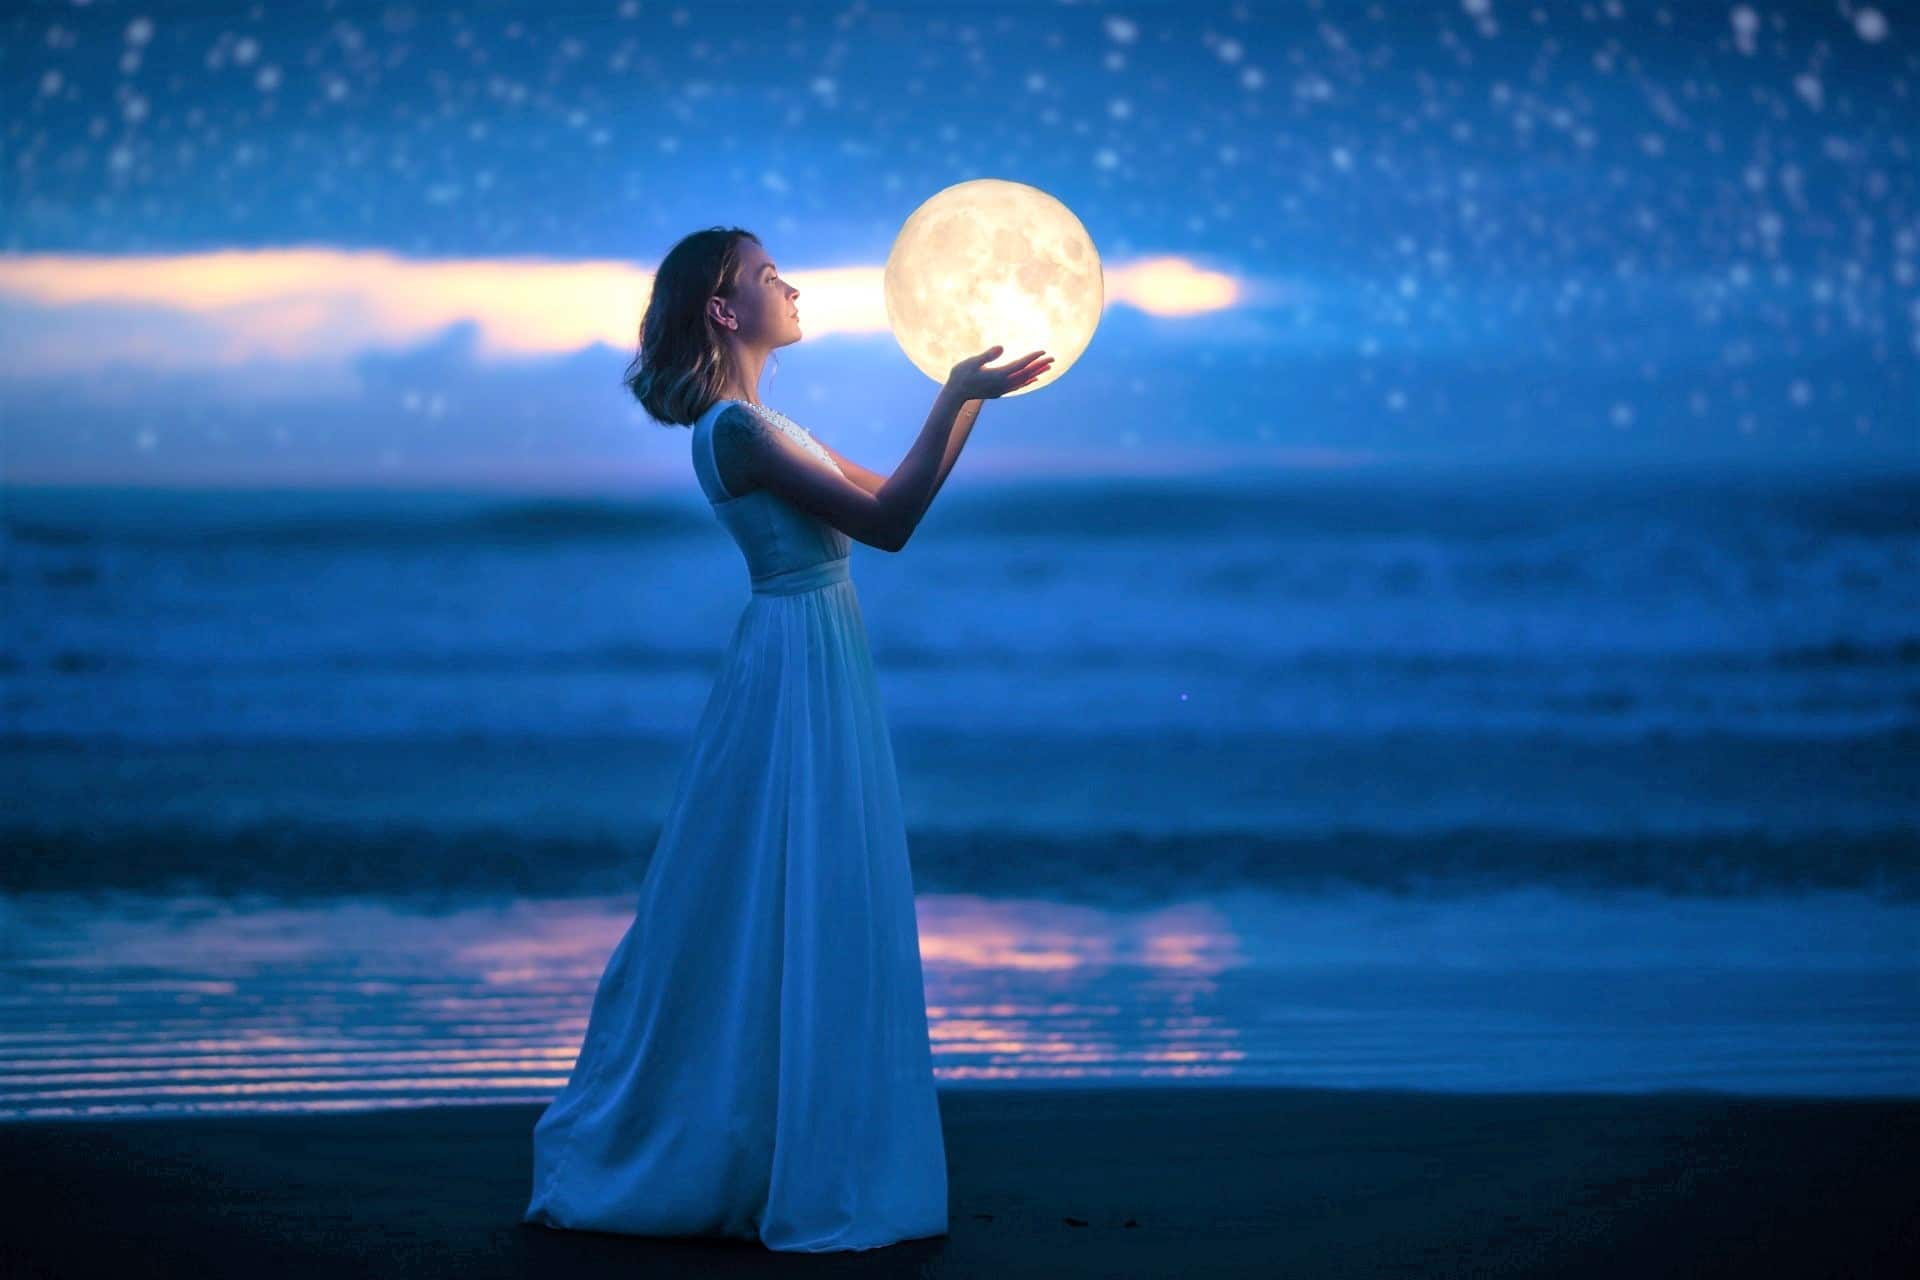 A young girl on a night beach holds the moon, with a starry sky